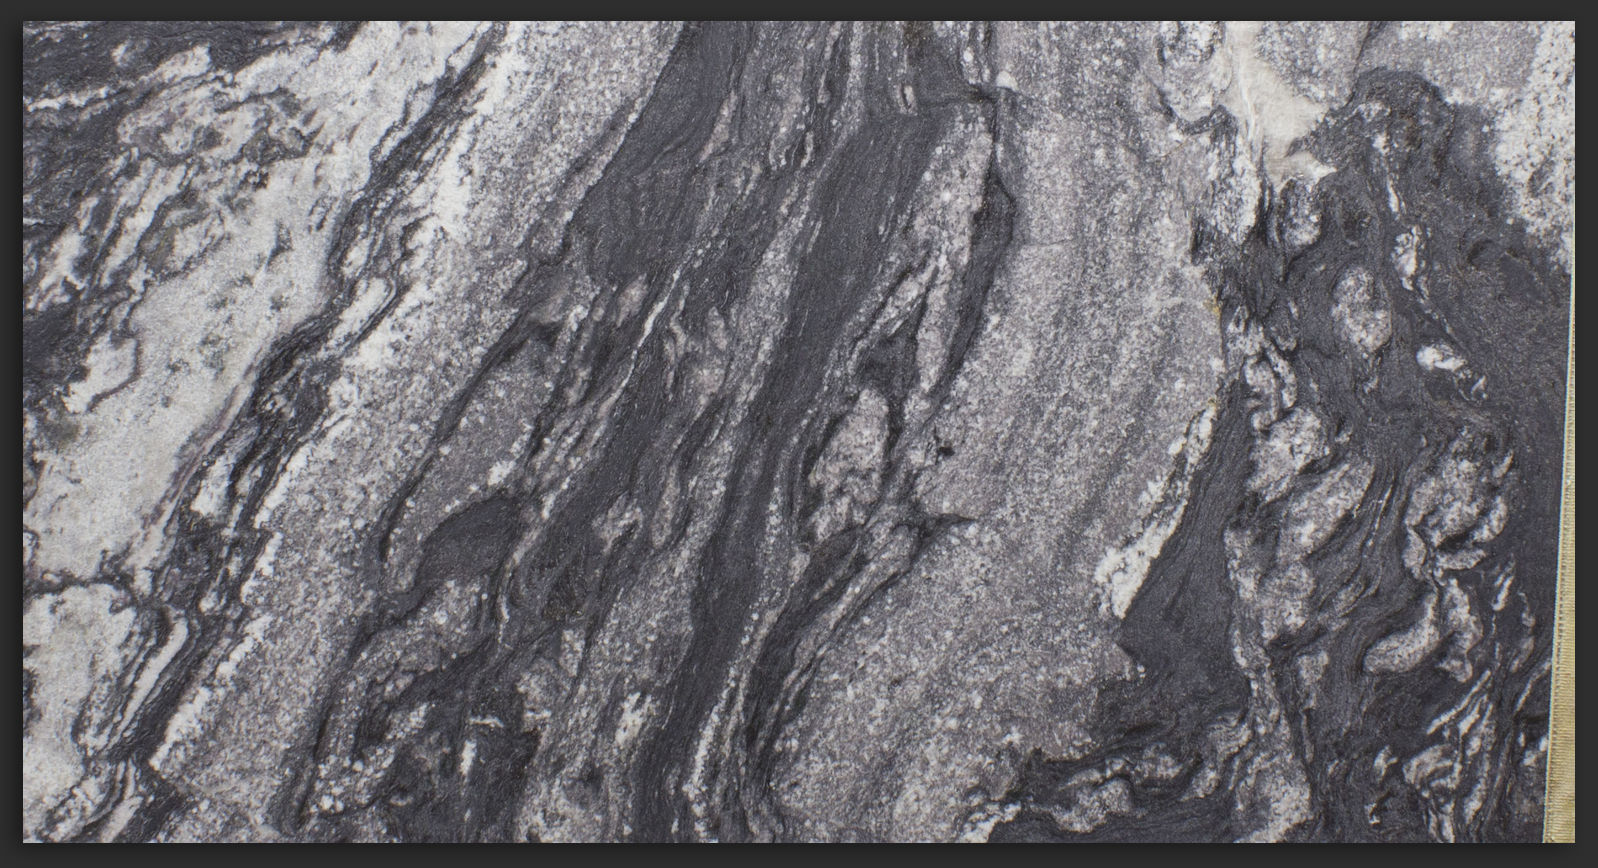 Atacama Black Granite photo courtesy of hollandmarbleandgranite.com